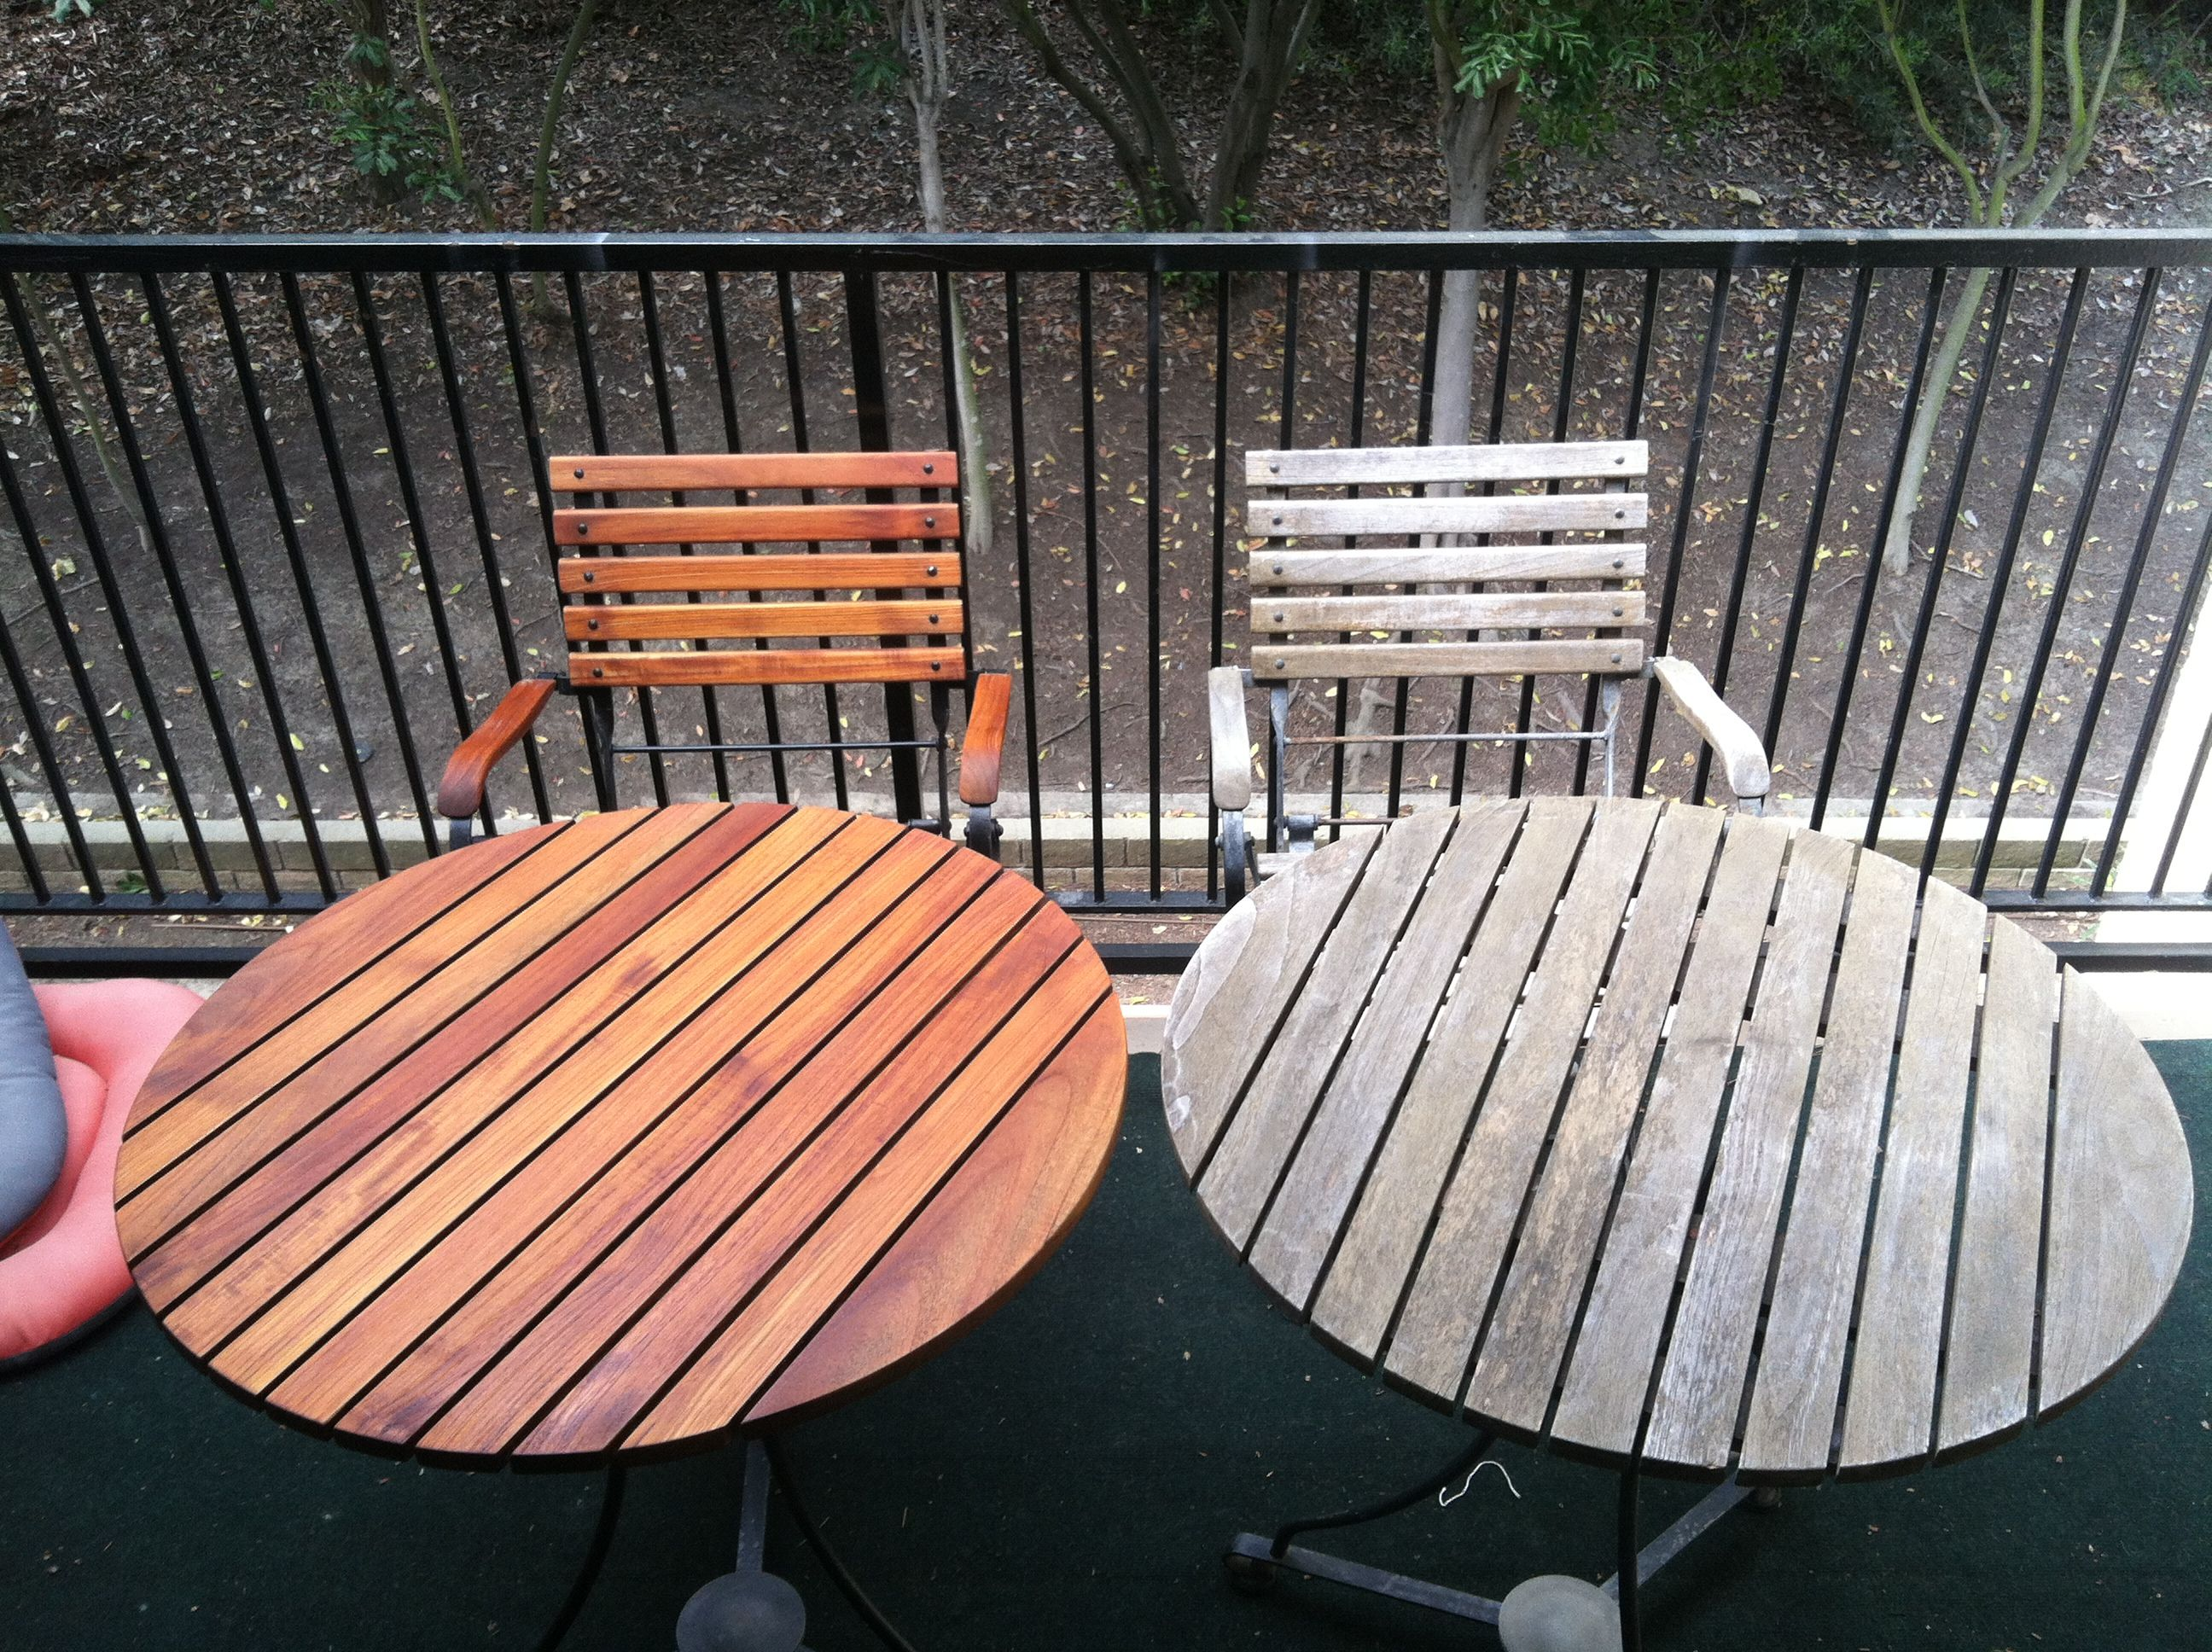 Alex Stained This Teak Wood Set Of Tables And Chairs This Is What It Used To Look Like Befo Outdoor Wood Furniture Teak Patio Furniture Teak Outdoor Furniture